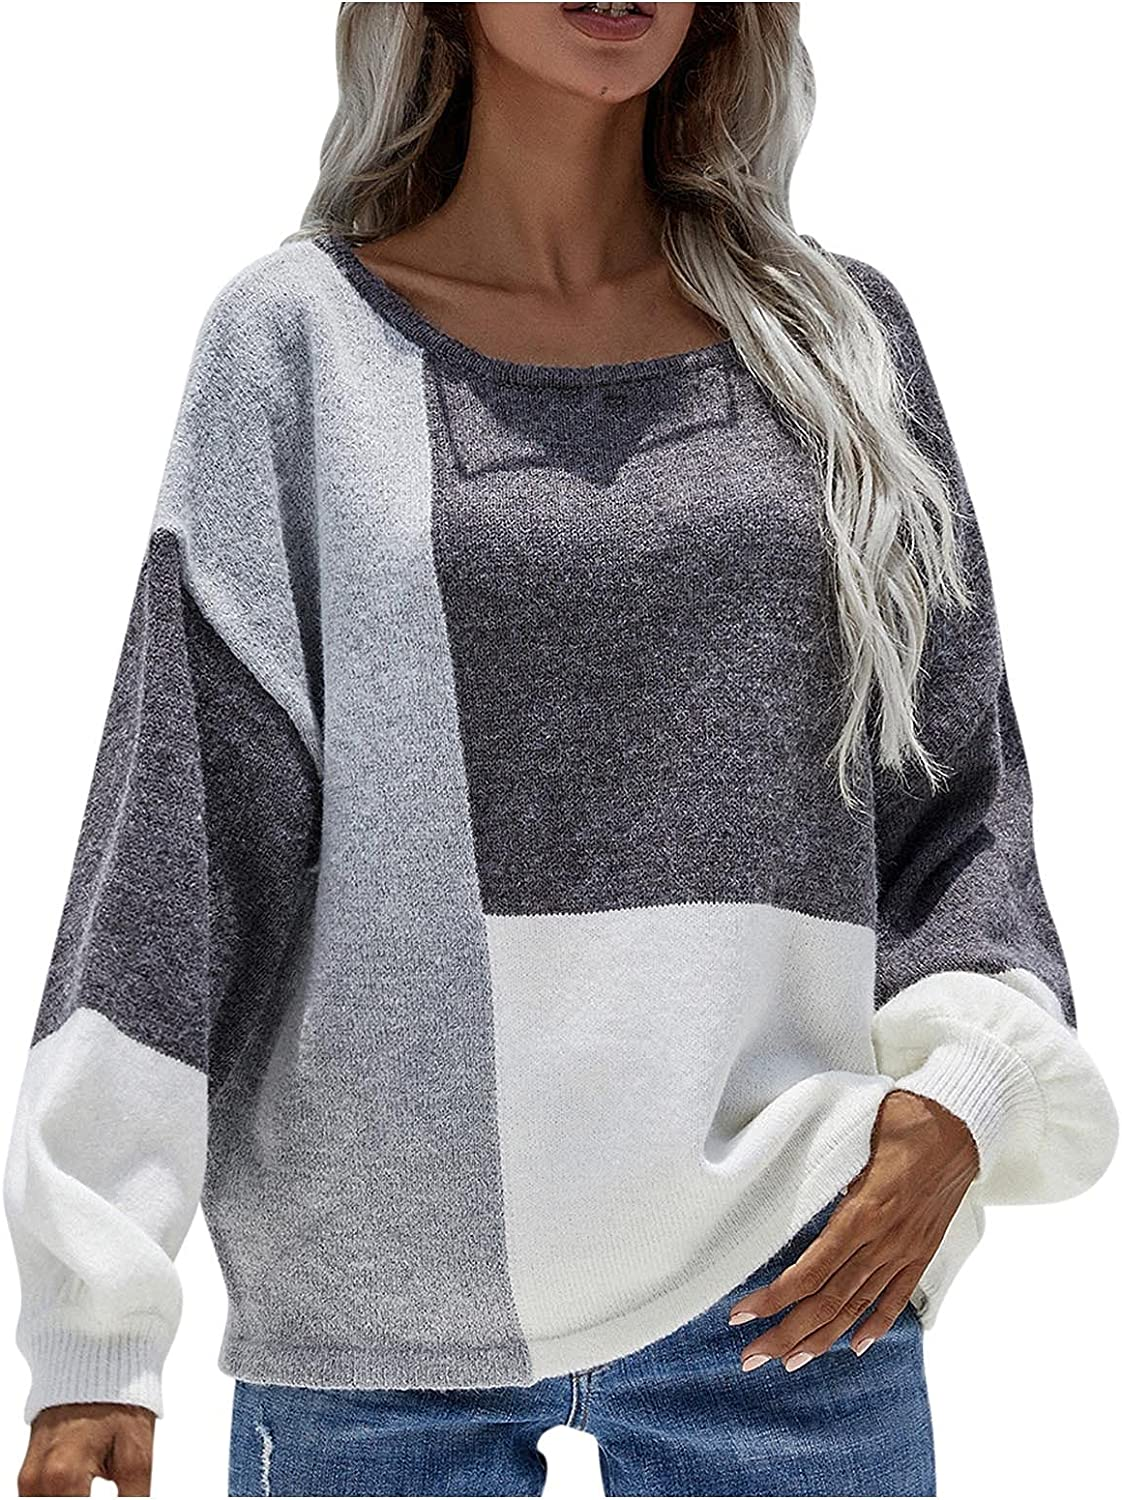 BEUU Women's Color Block Patchwork Pullover Sweater Casual Long Sleeve Crew Neck Loose Knitted Pullovers Jumper Tops